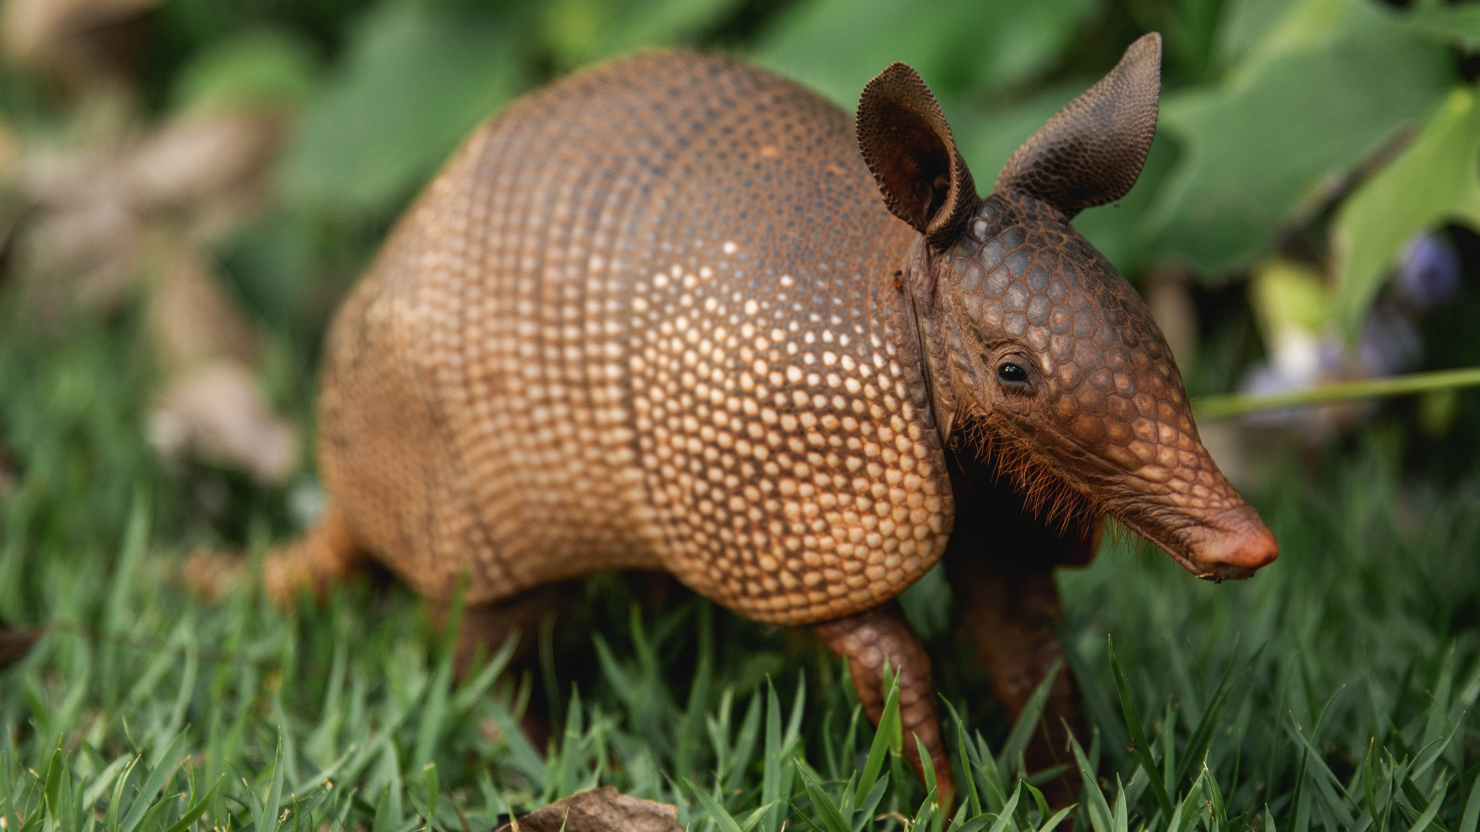 Two Armadillos' Strife | A More Positive Perspective